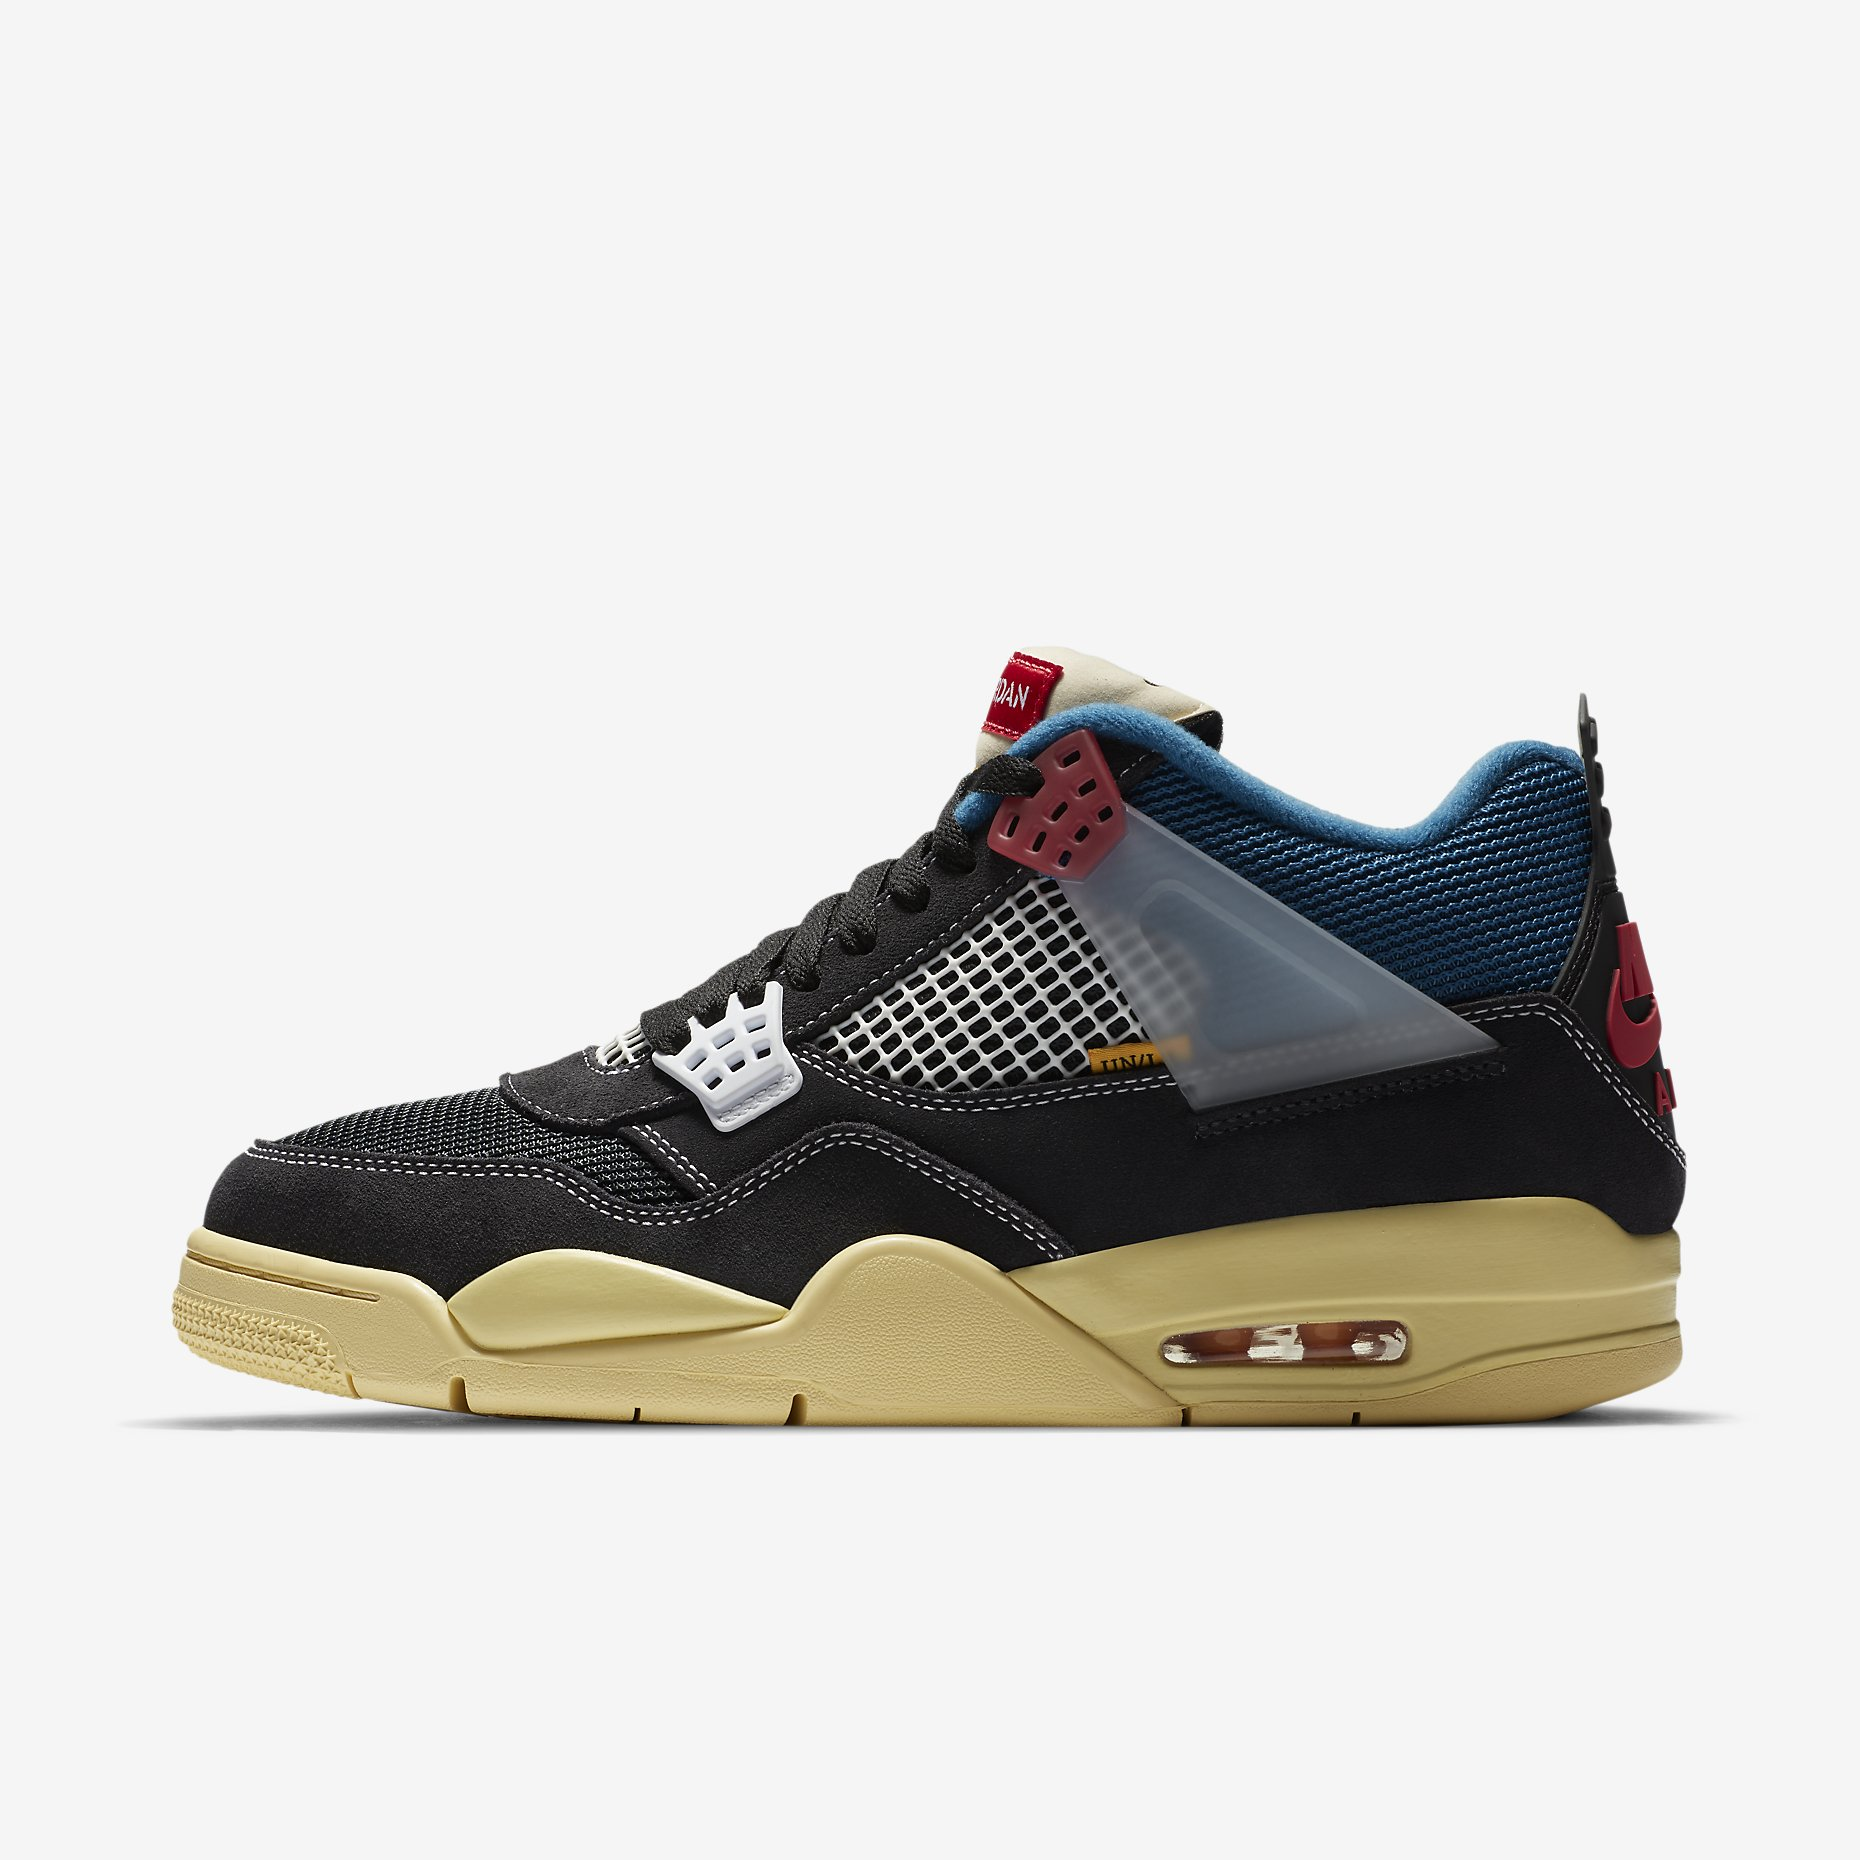 Air Jordan 4 Retro SP x Union 'Off Noir'}